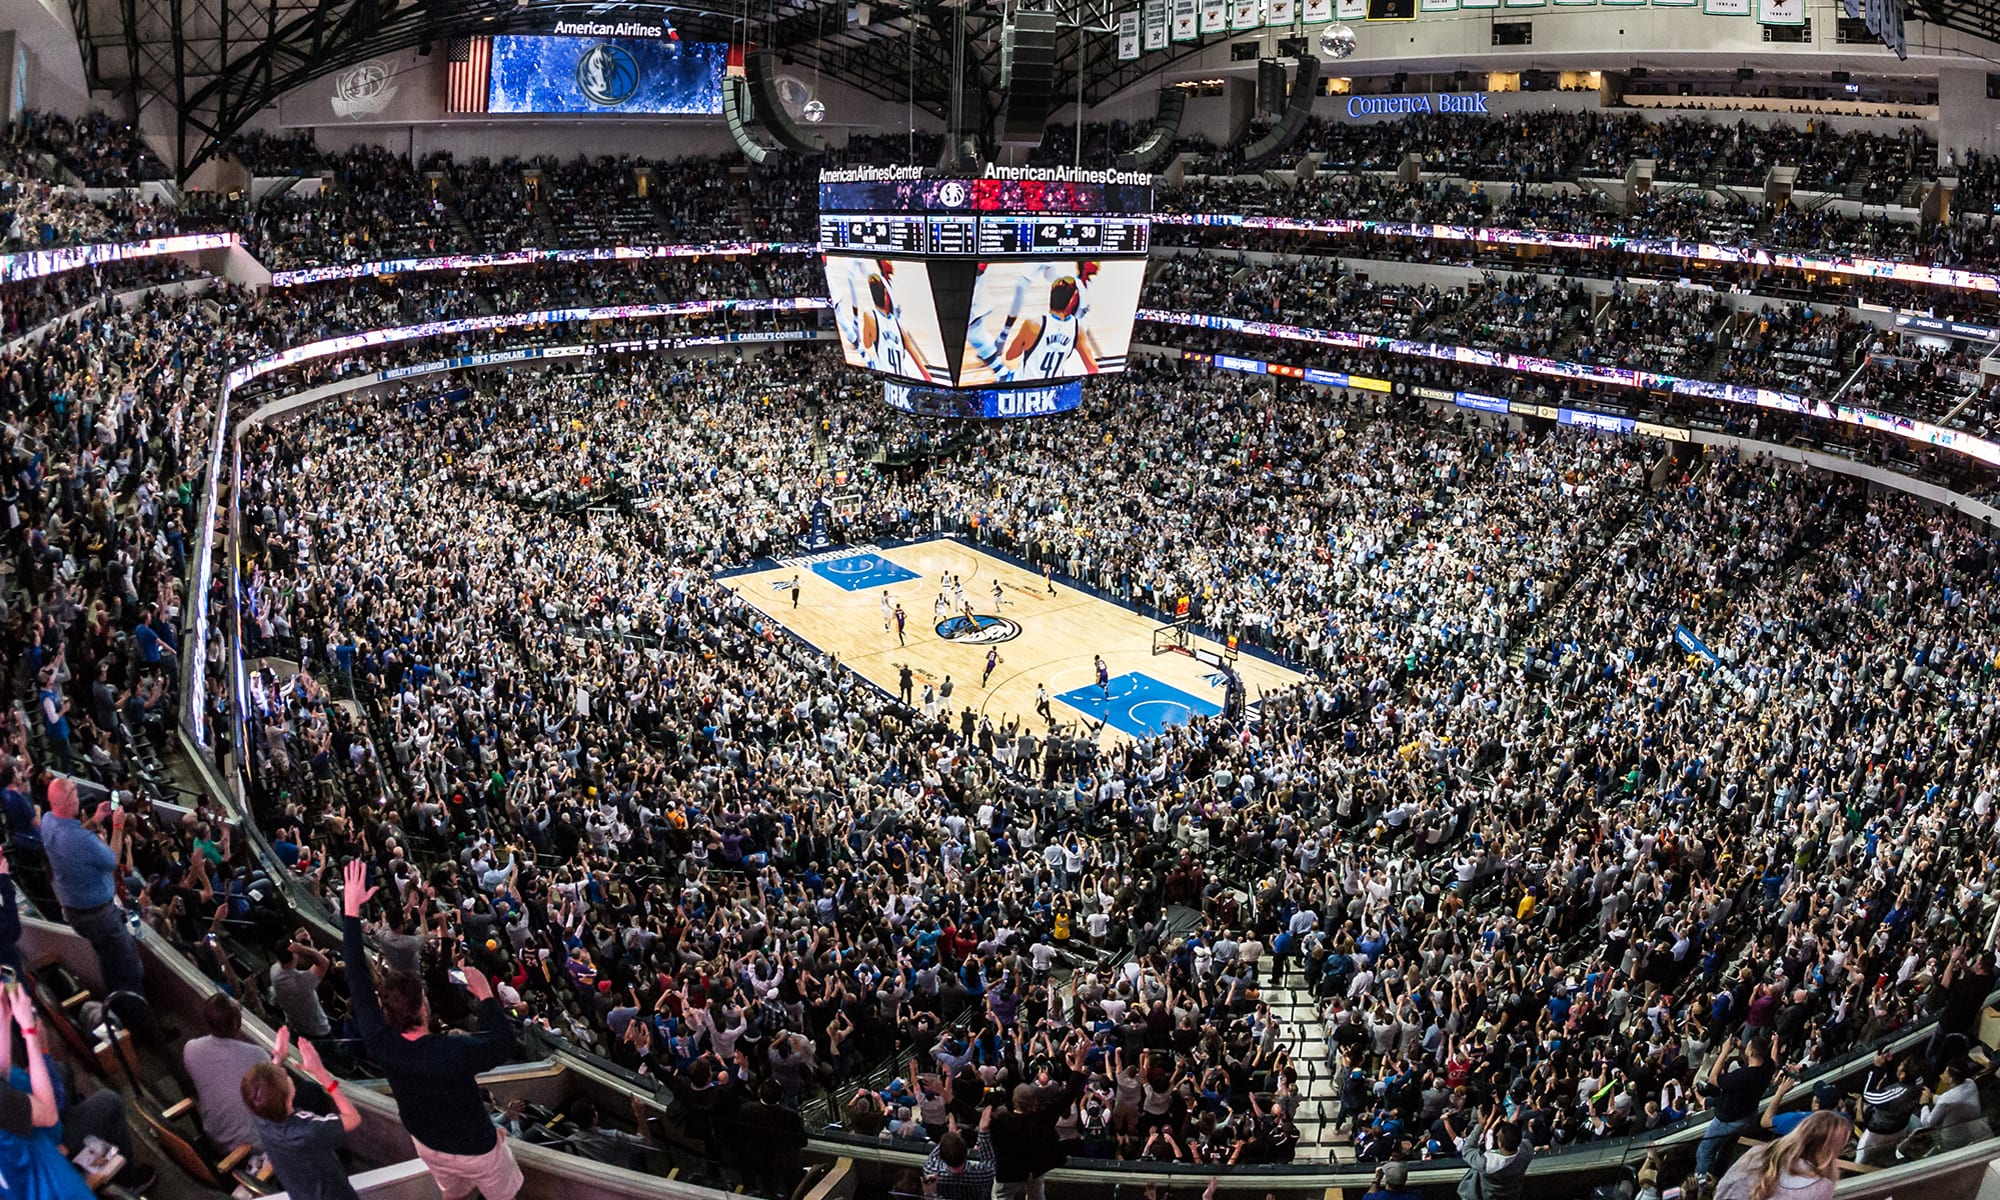 Dallas Mavericks Home Schedule 2019 20 & Seating Chart In American Airlines Center Printable Calendar